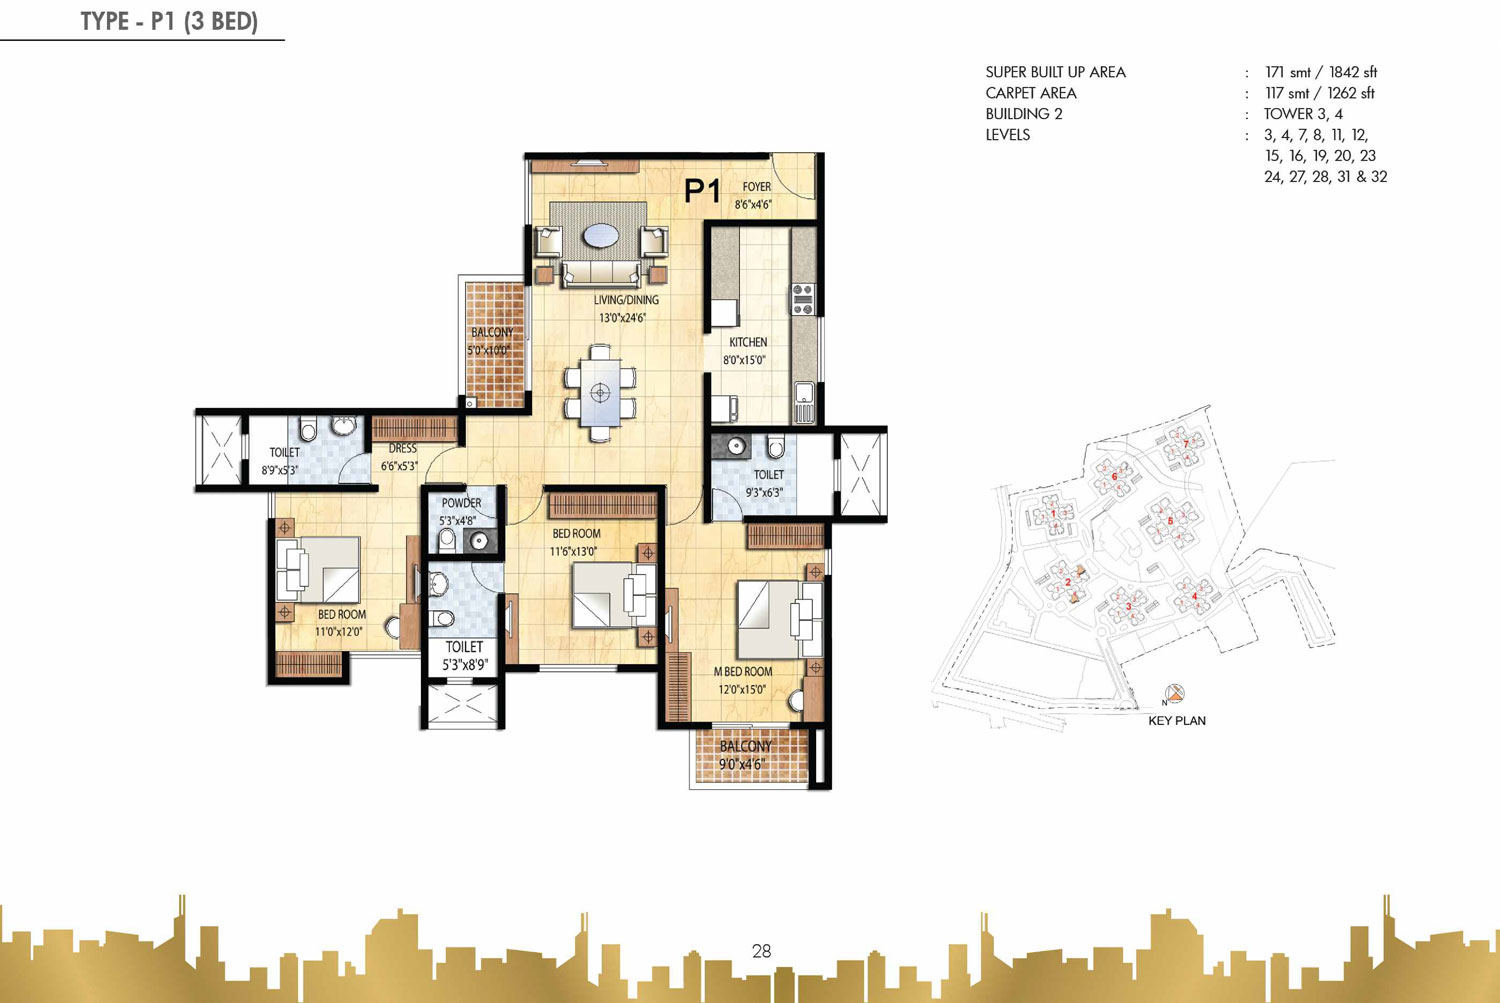 Type P1 - 3 Bed - 1842 Sq Ft